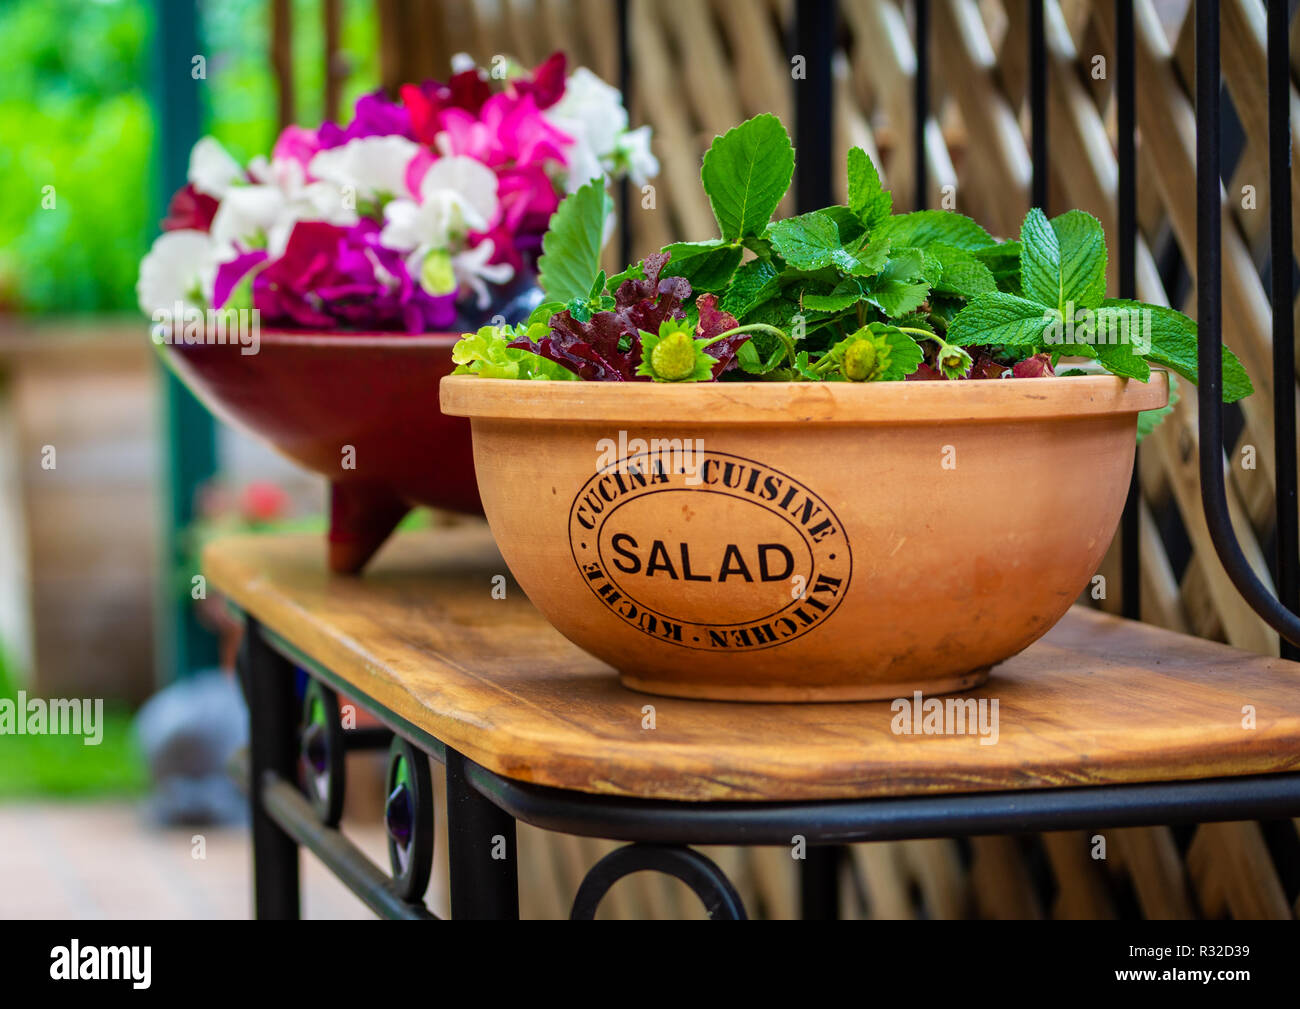 Recycled Plant Pots Plastic Free Gardening Salad Plants Growing In Upcycled Recycled Salad Bowl Outside In Garden On Repurposed Book Shelf Stock Photo Alamy